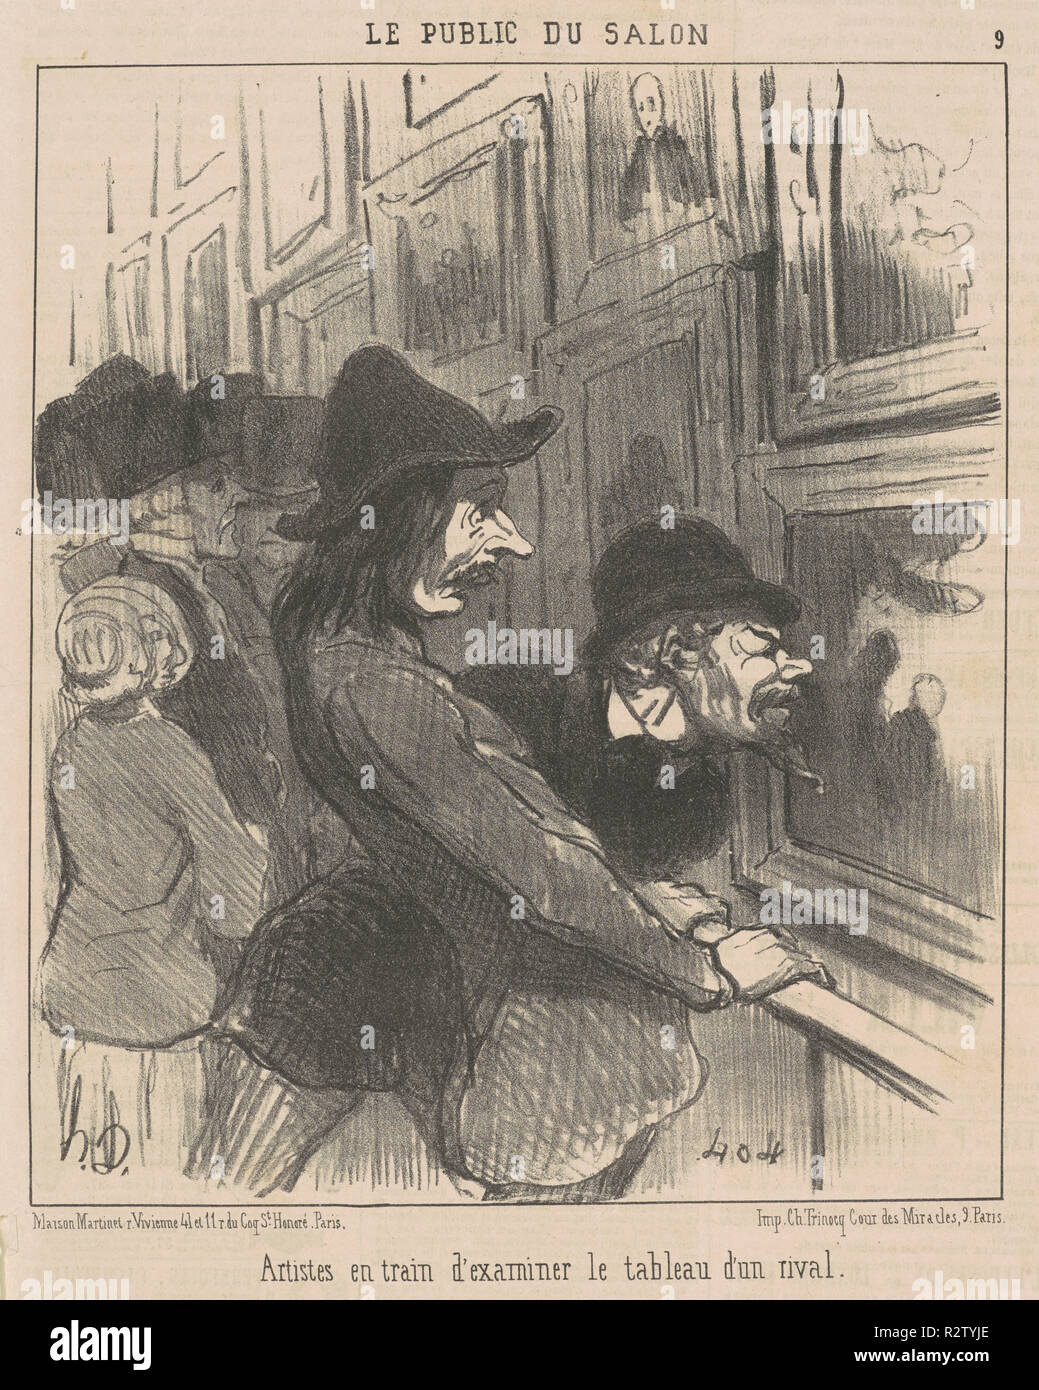 Artistes en train d'examiner ... Dated: 19th century. Medium: lithograph. Museum: National Gallery of Art, Washington DC. Author: HONORÉ DAUMIER. - Stock Image